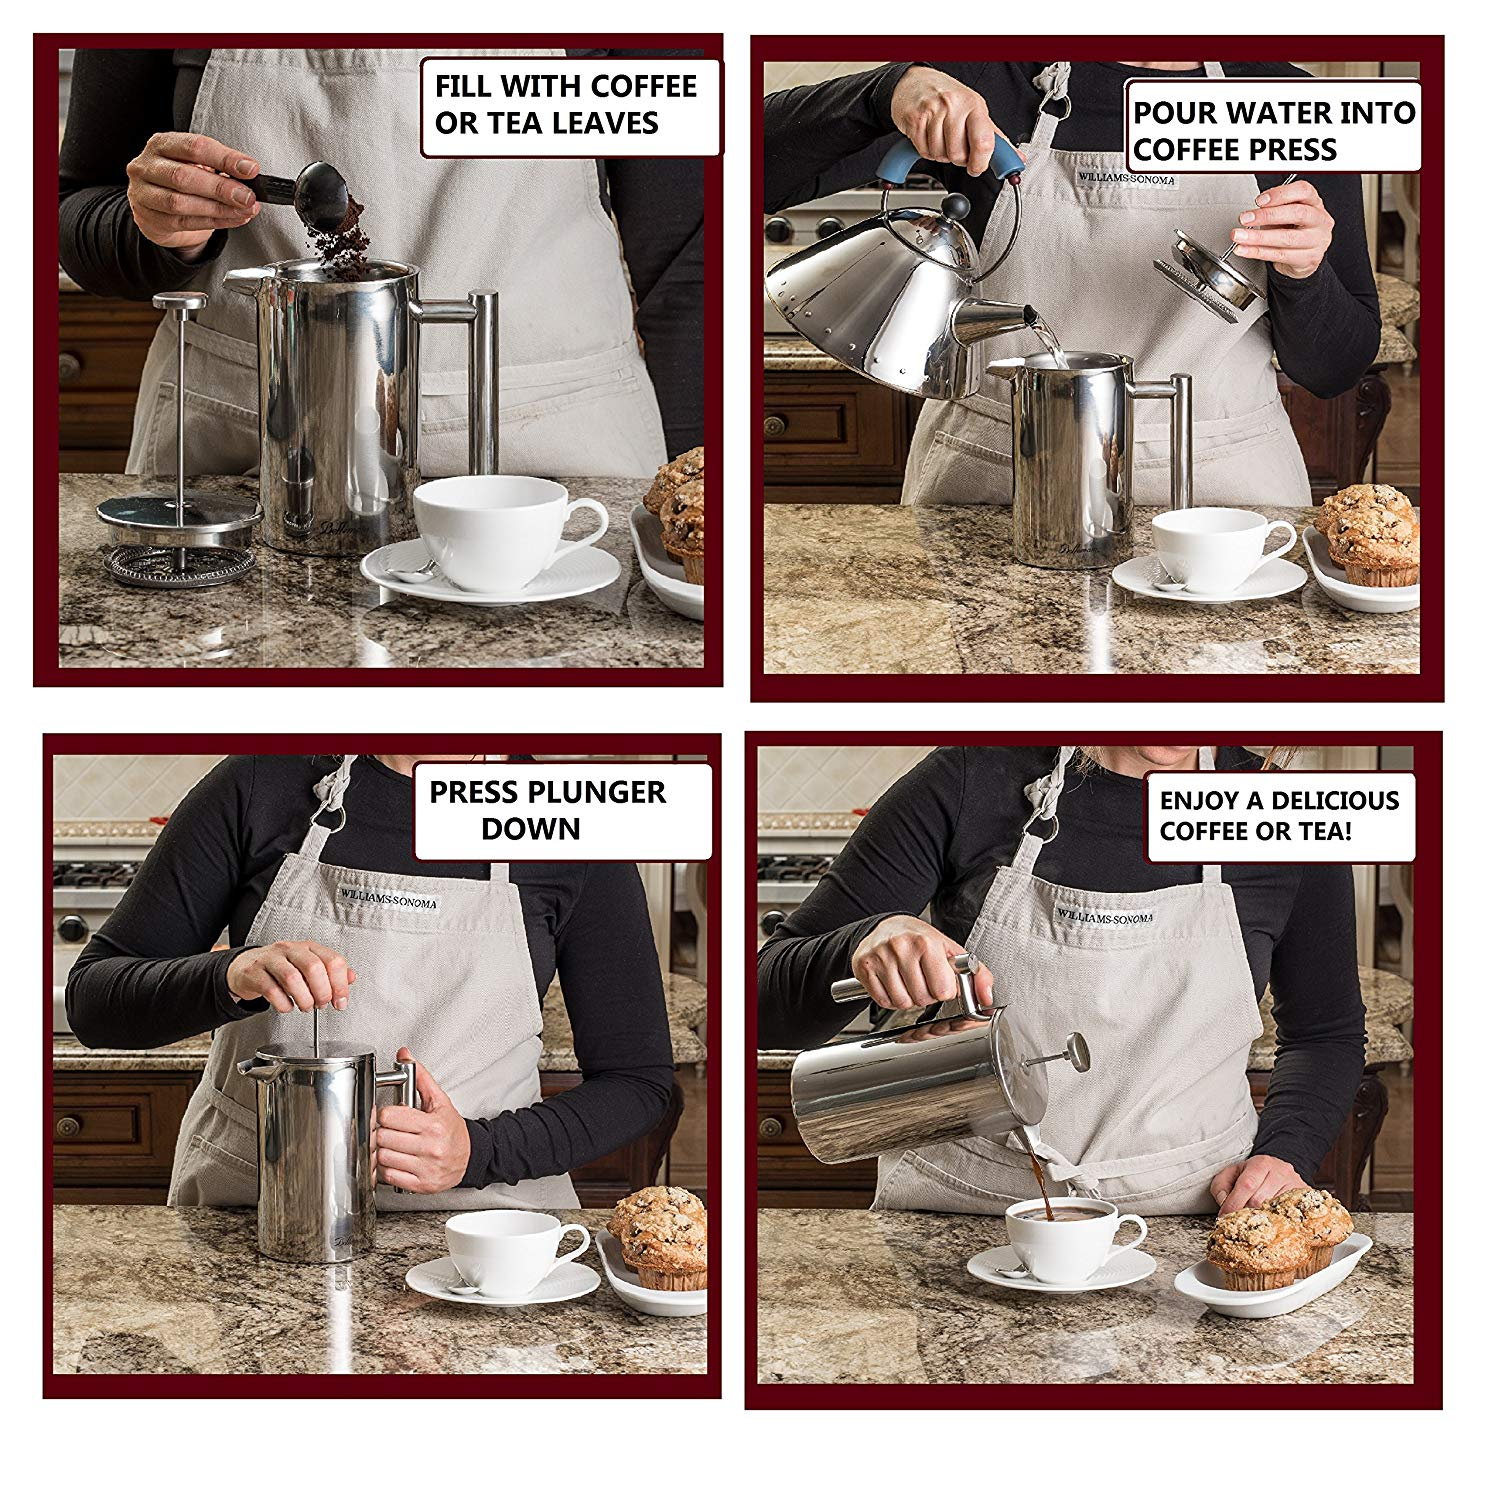 French Press Extra Coffee Maker & Tea Maker info